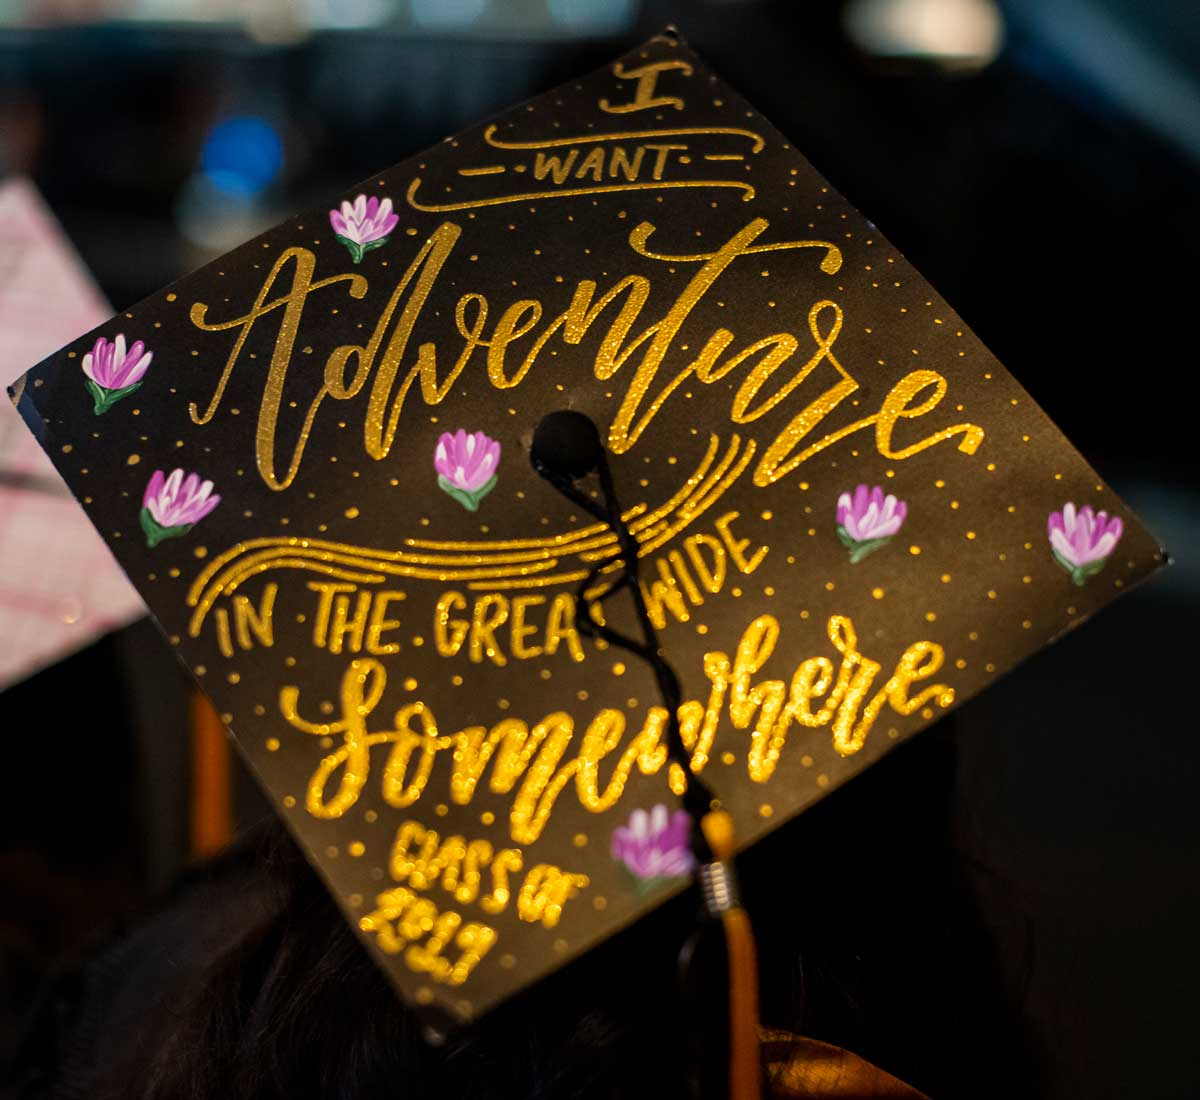 black graduation cap with gold lettering design: I want adventure in the great wide somewhere